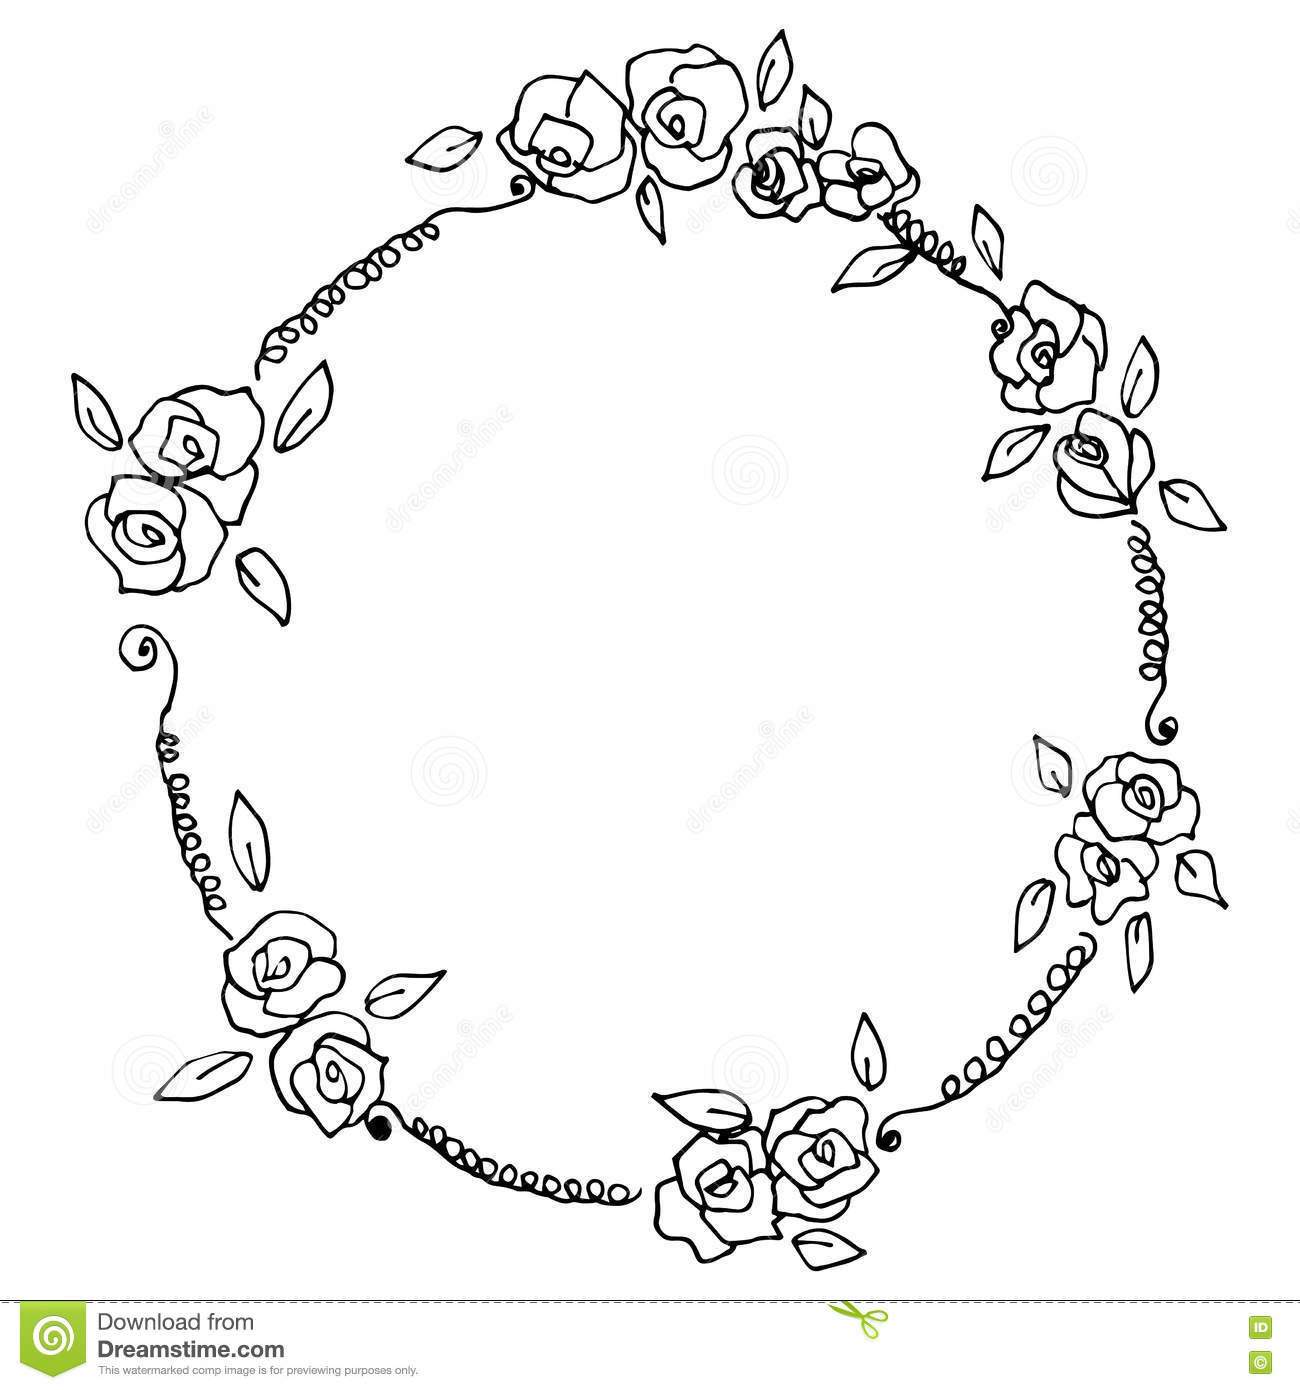 Flower Circle Line Drawing : Flora circle frame flowers wreath vintage style